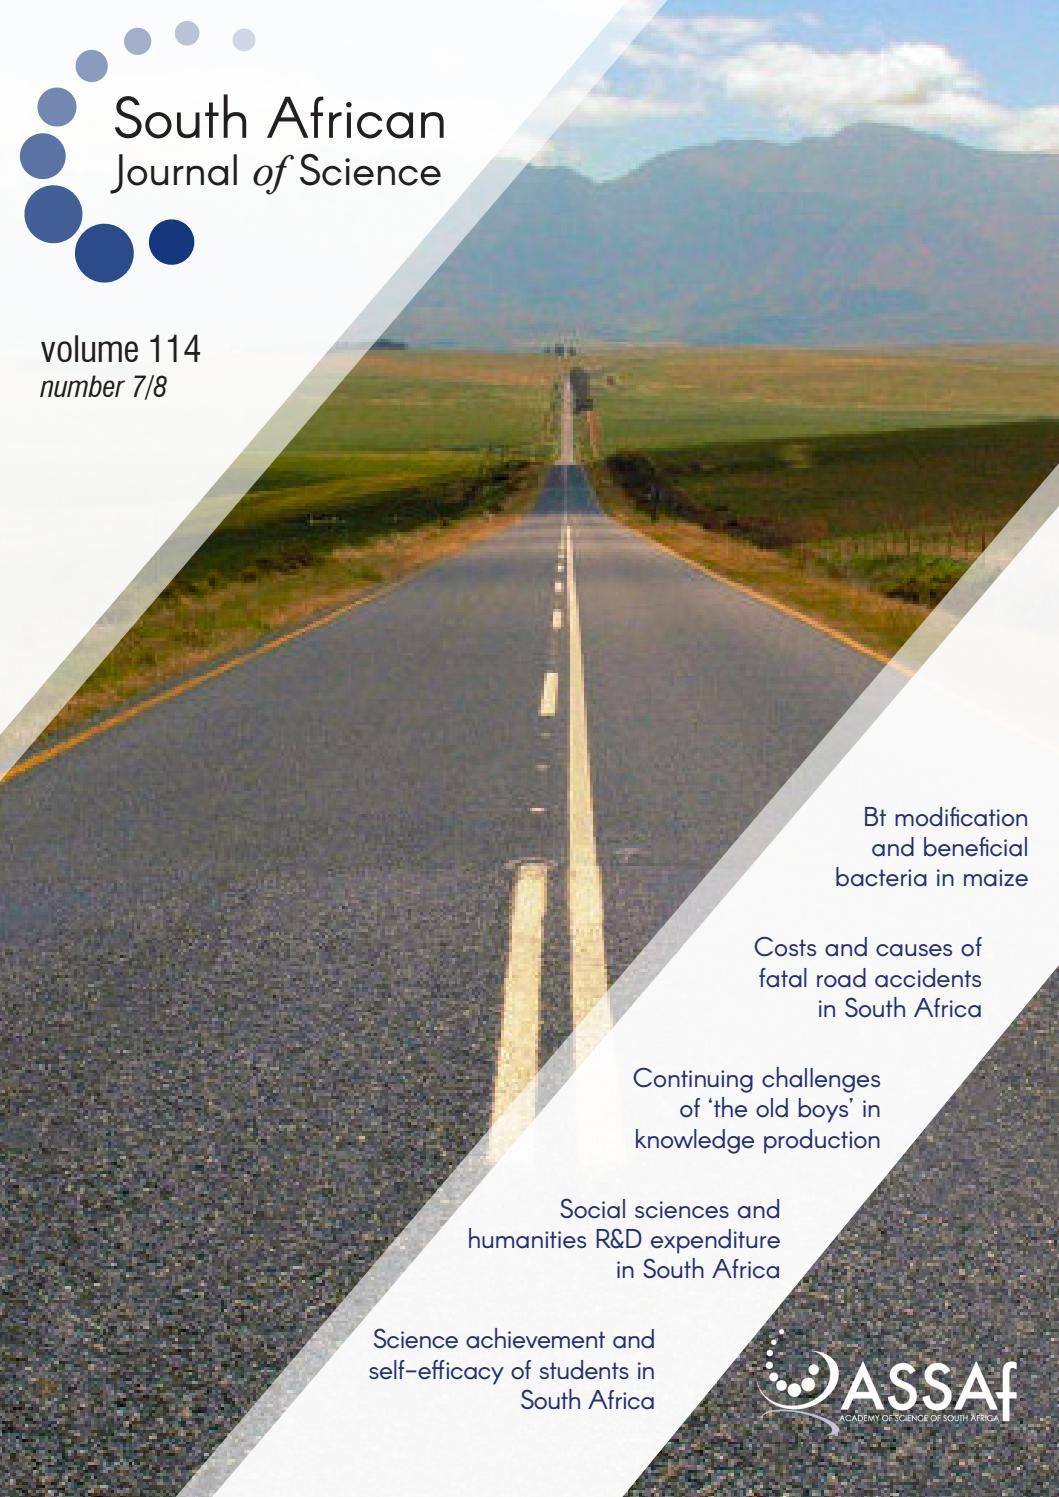 South African Journal of Science Volume 114 Issue 7/8 by